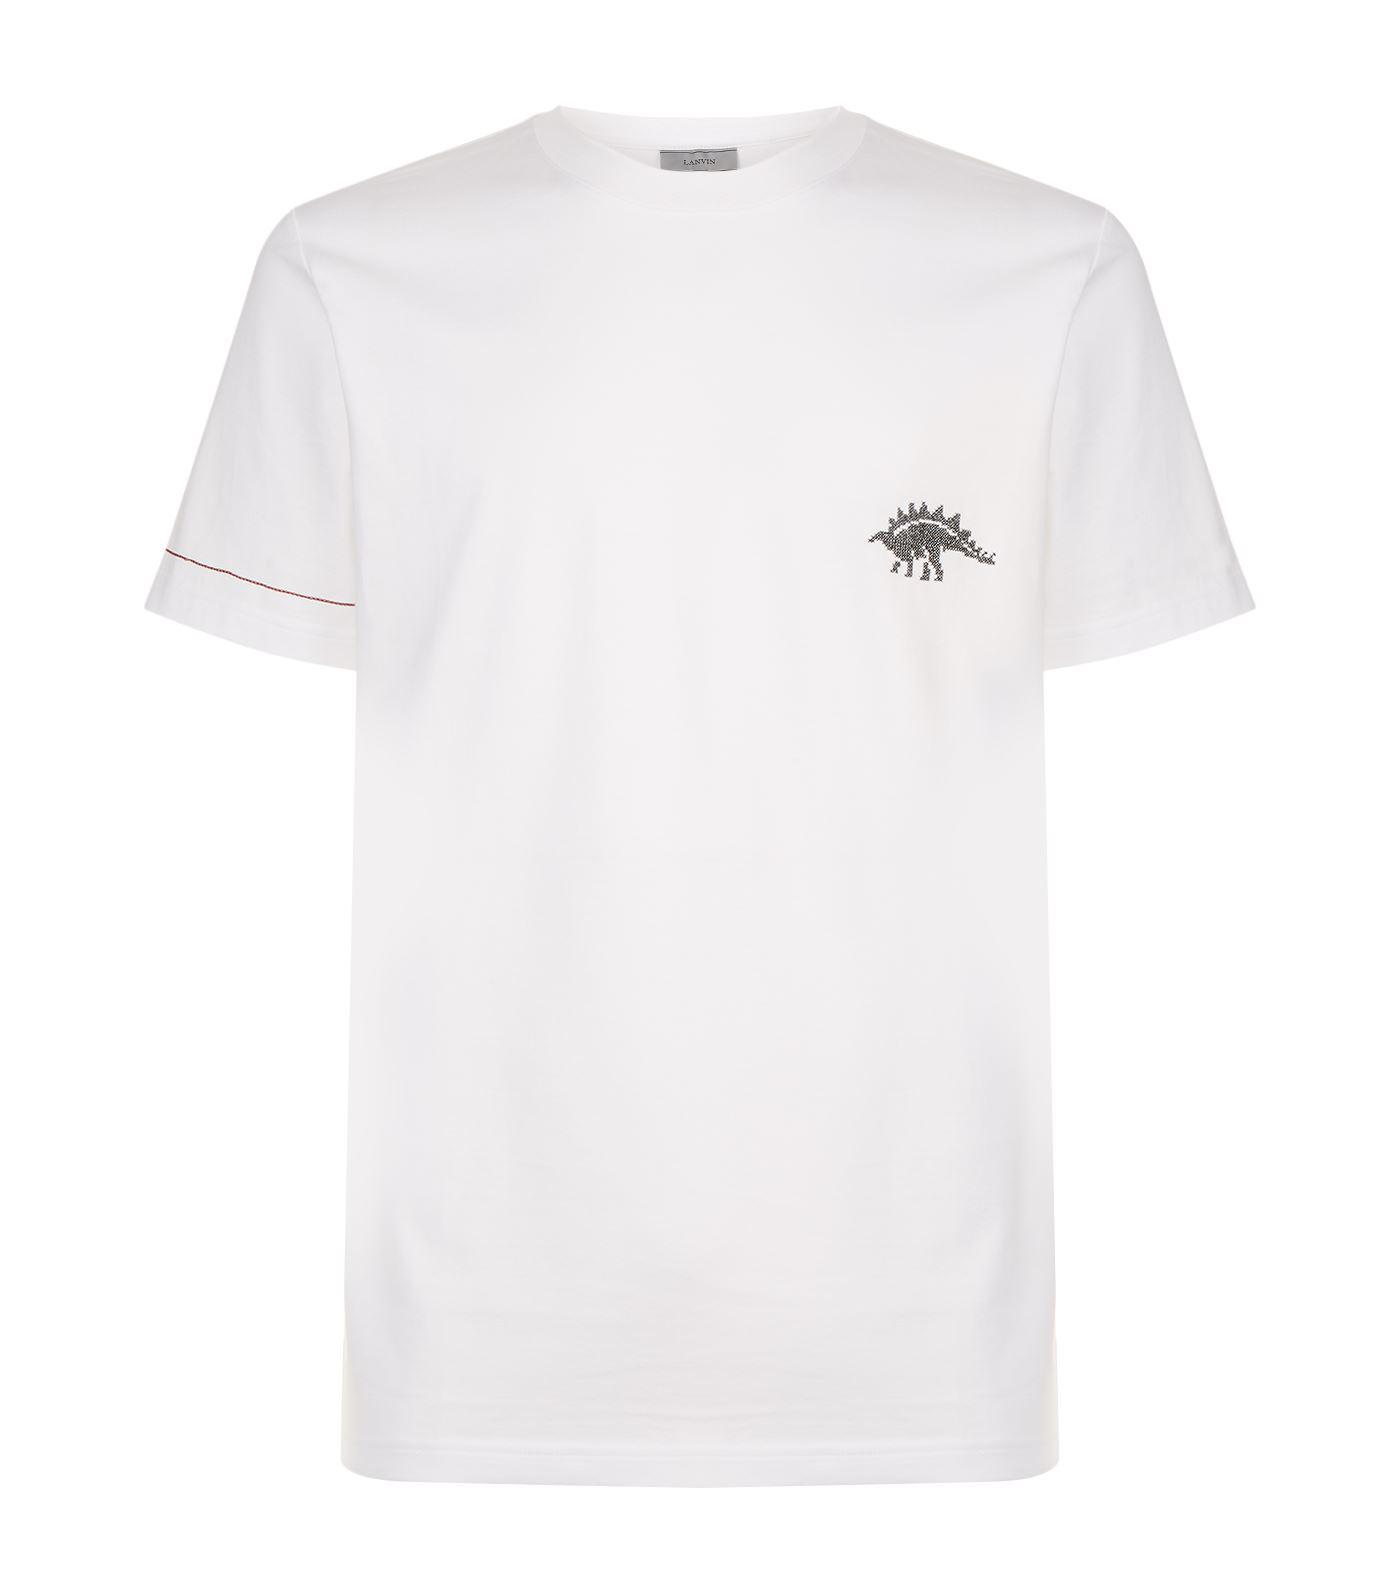 Discount Manchester On Hot Sale Dinosaurs jaquard printed t-shirt Lanvin 7vaRAG5S